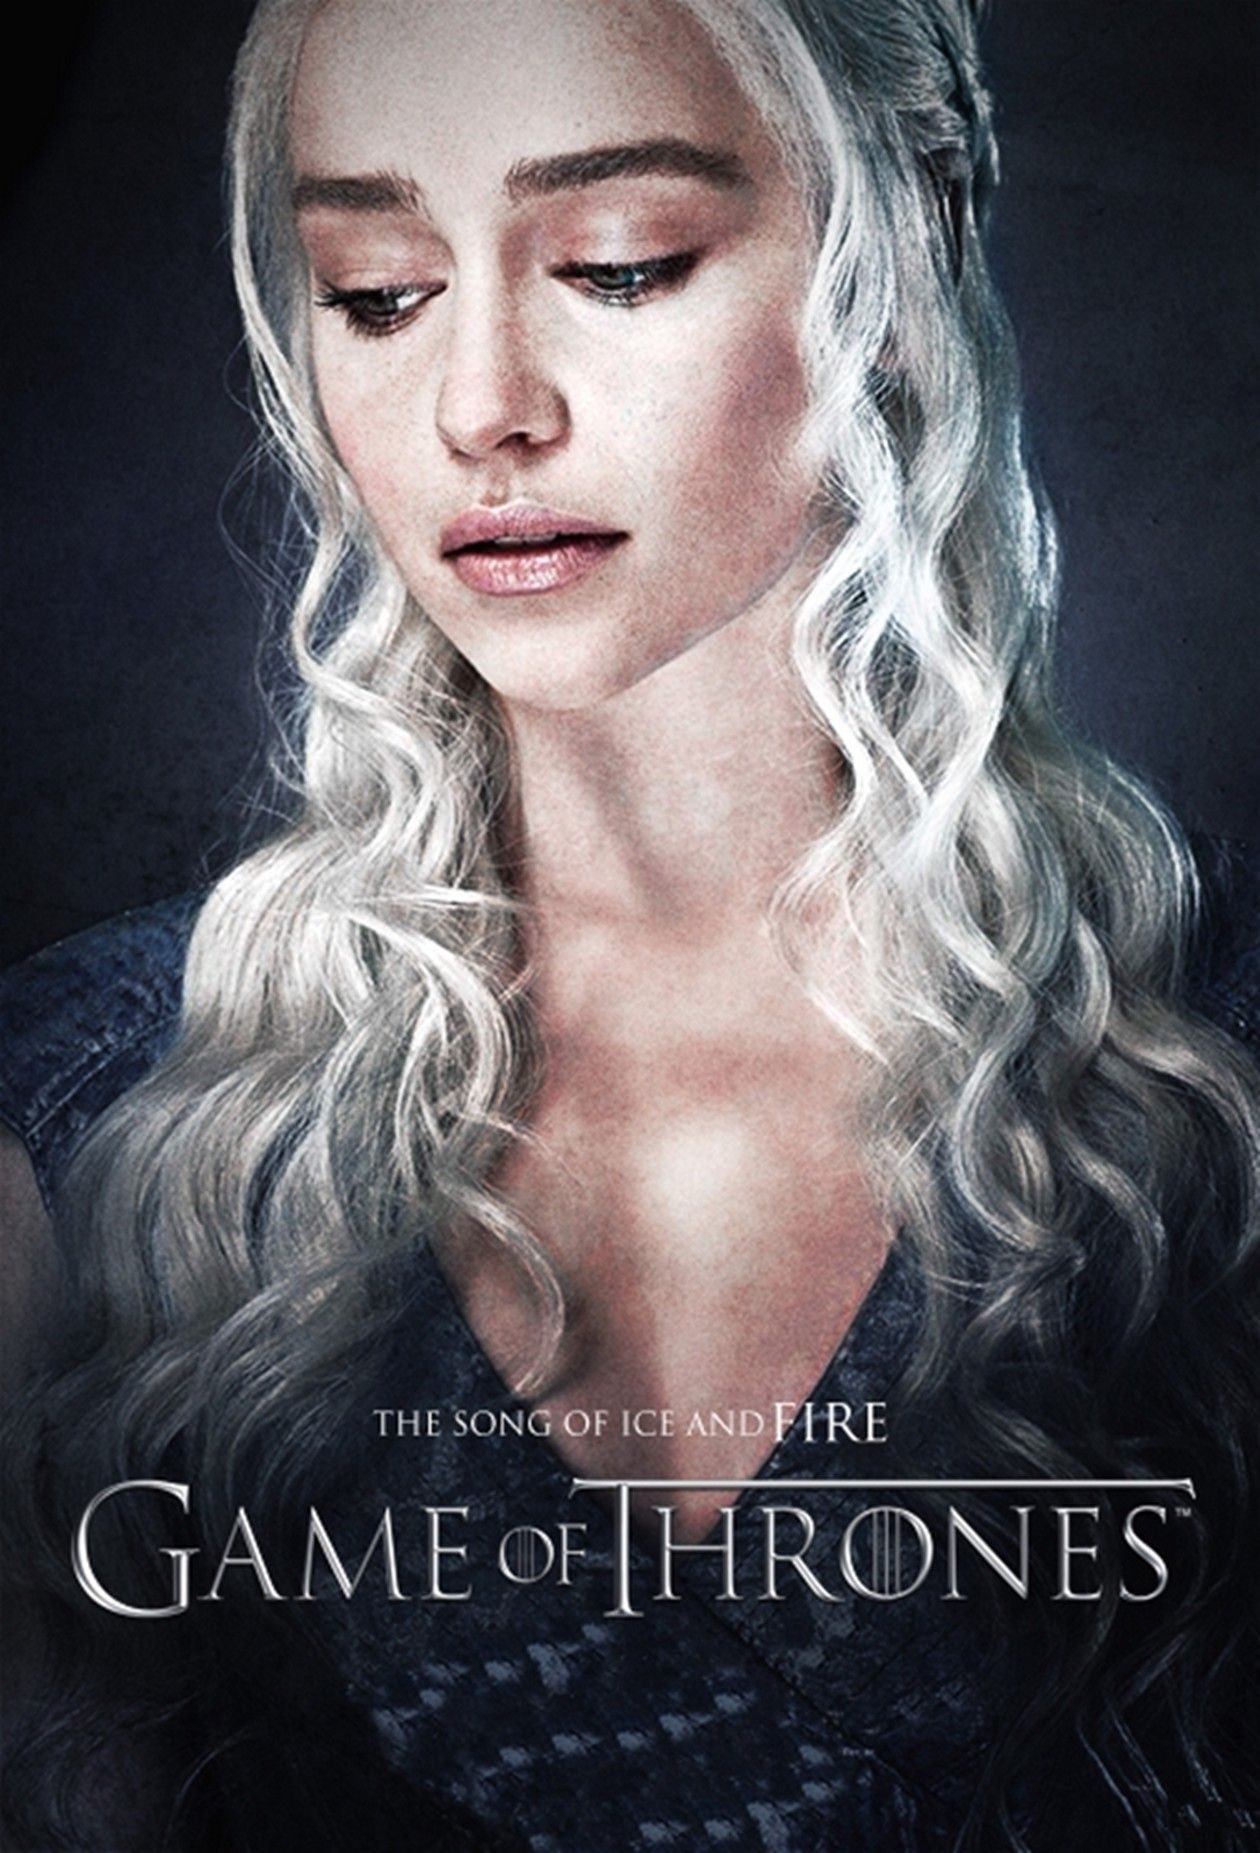 Emilia Clarke actress | Queen Daenerys Targaryen / Game of Thrones / Movie Series Season 5 Poster Affiche série Saison 5 2015